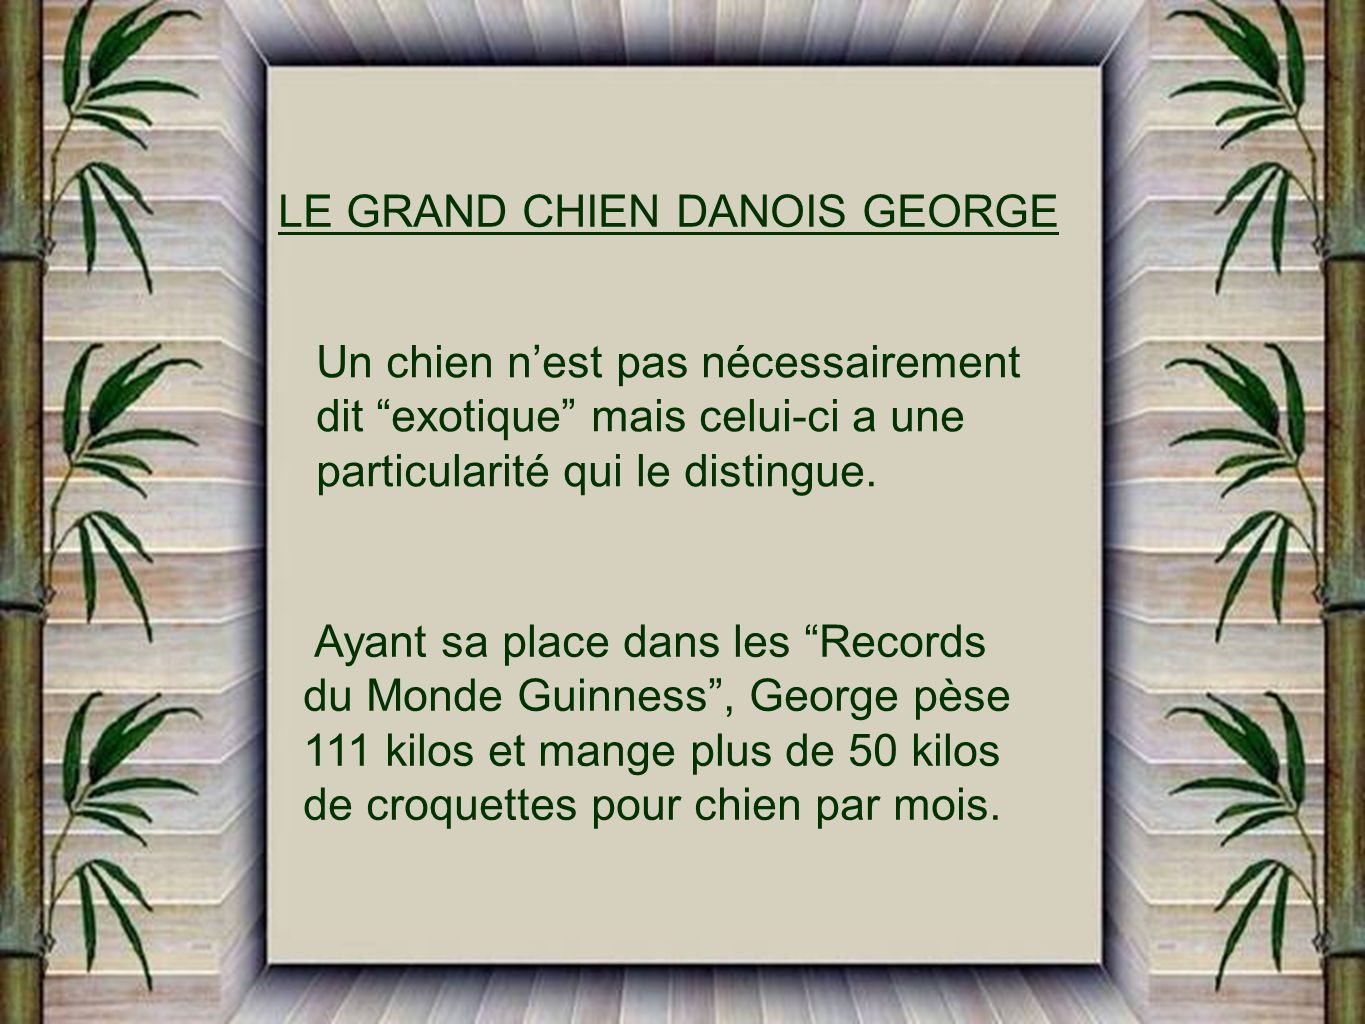 LE GRAND CHIEN DANOIS GEORGE